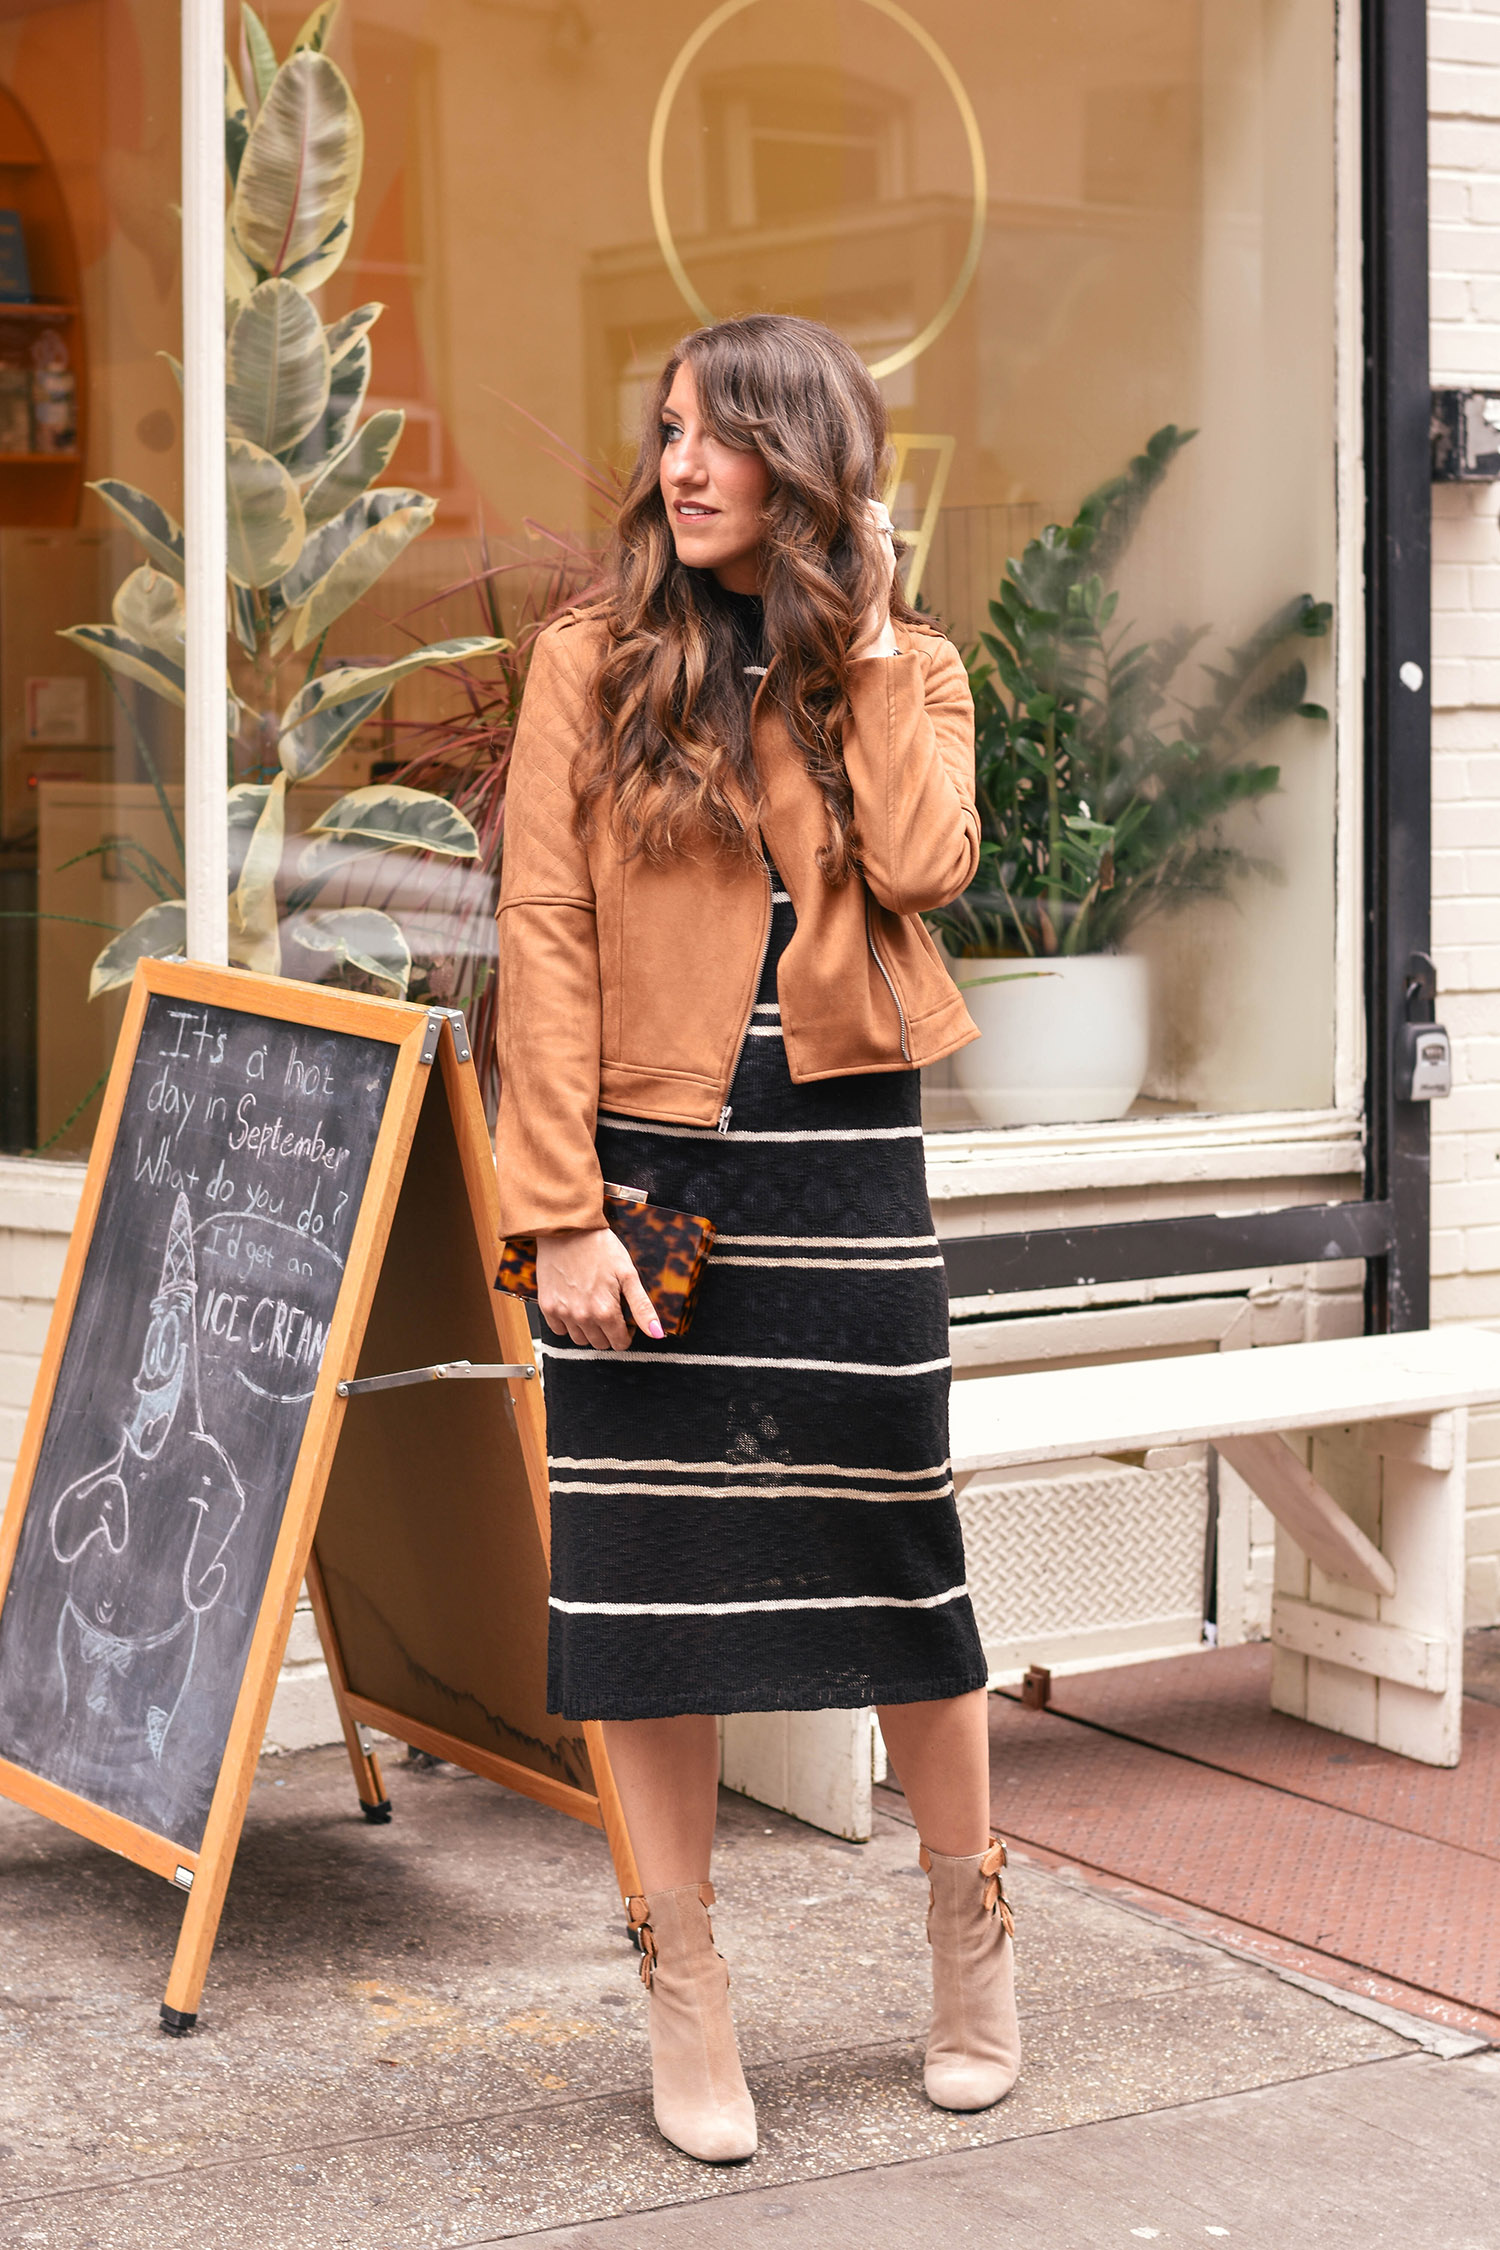 lily & sparrow boutique: 90s babe // britt emery